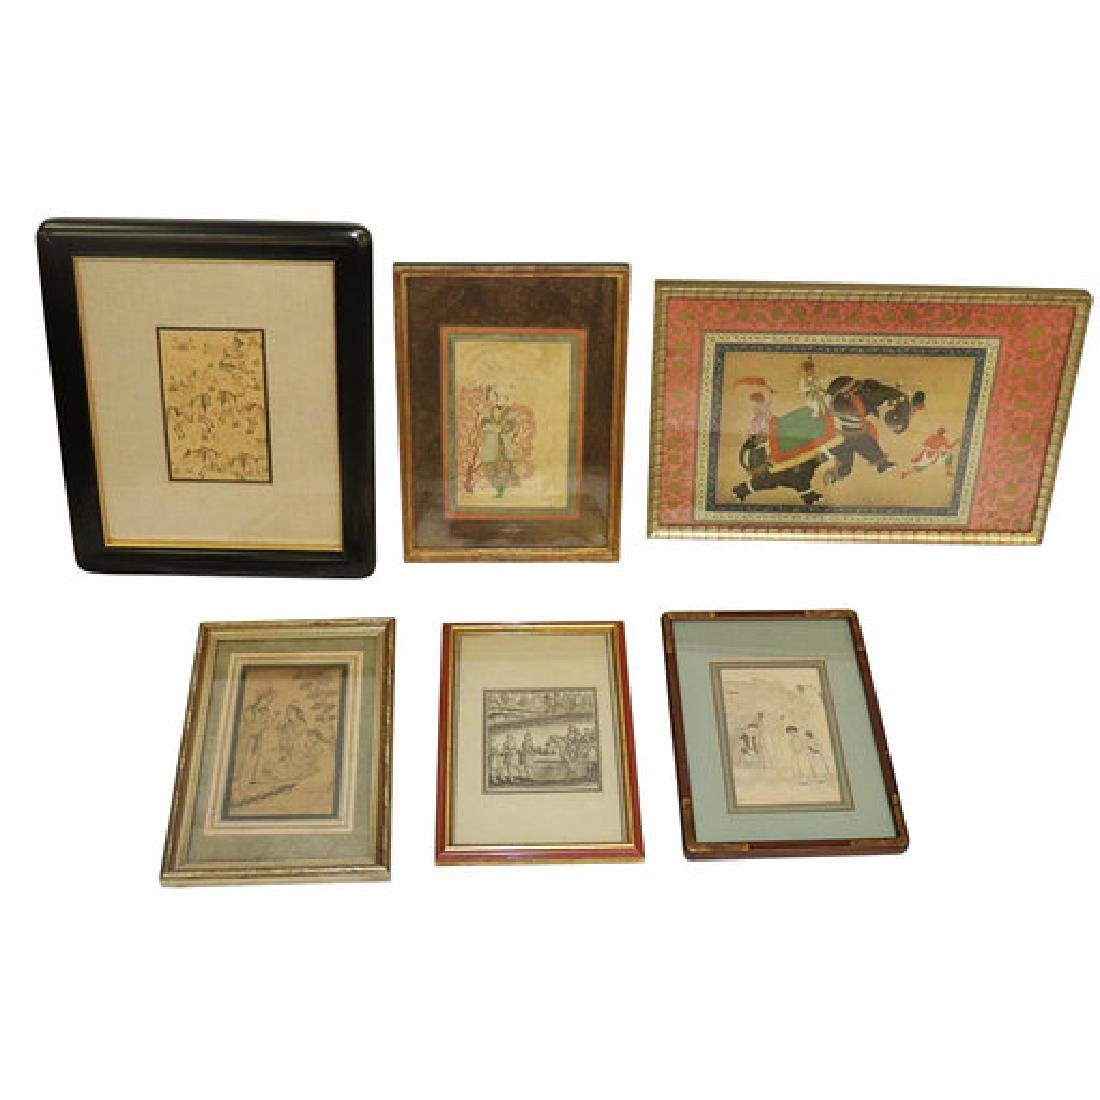 6 Antique Persian Drawings or Prints